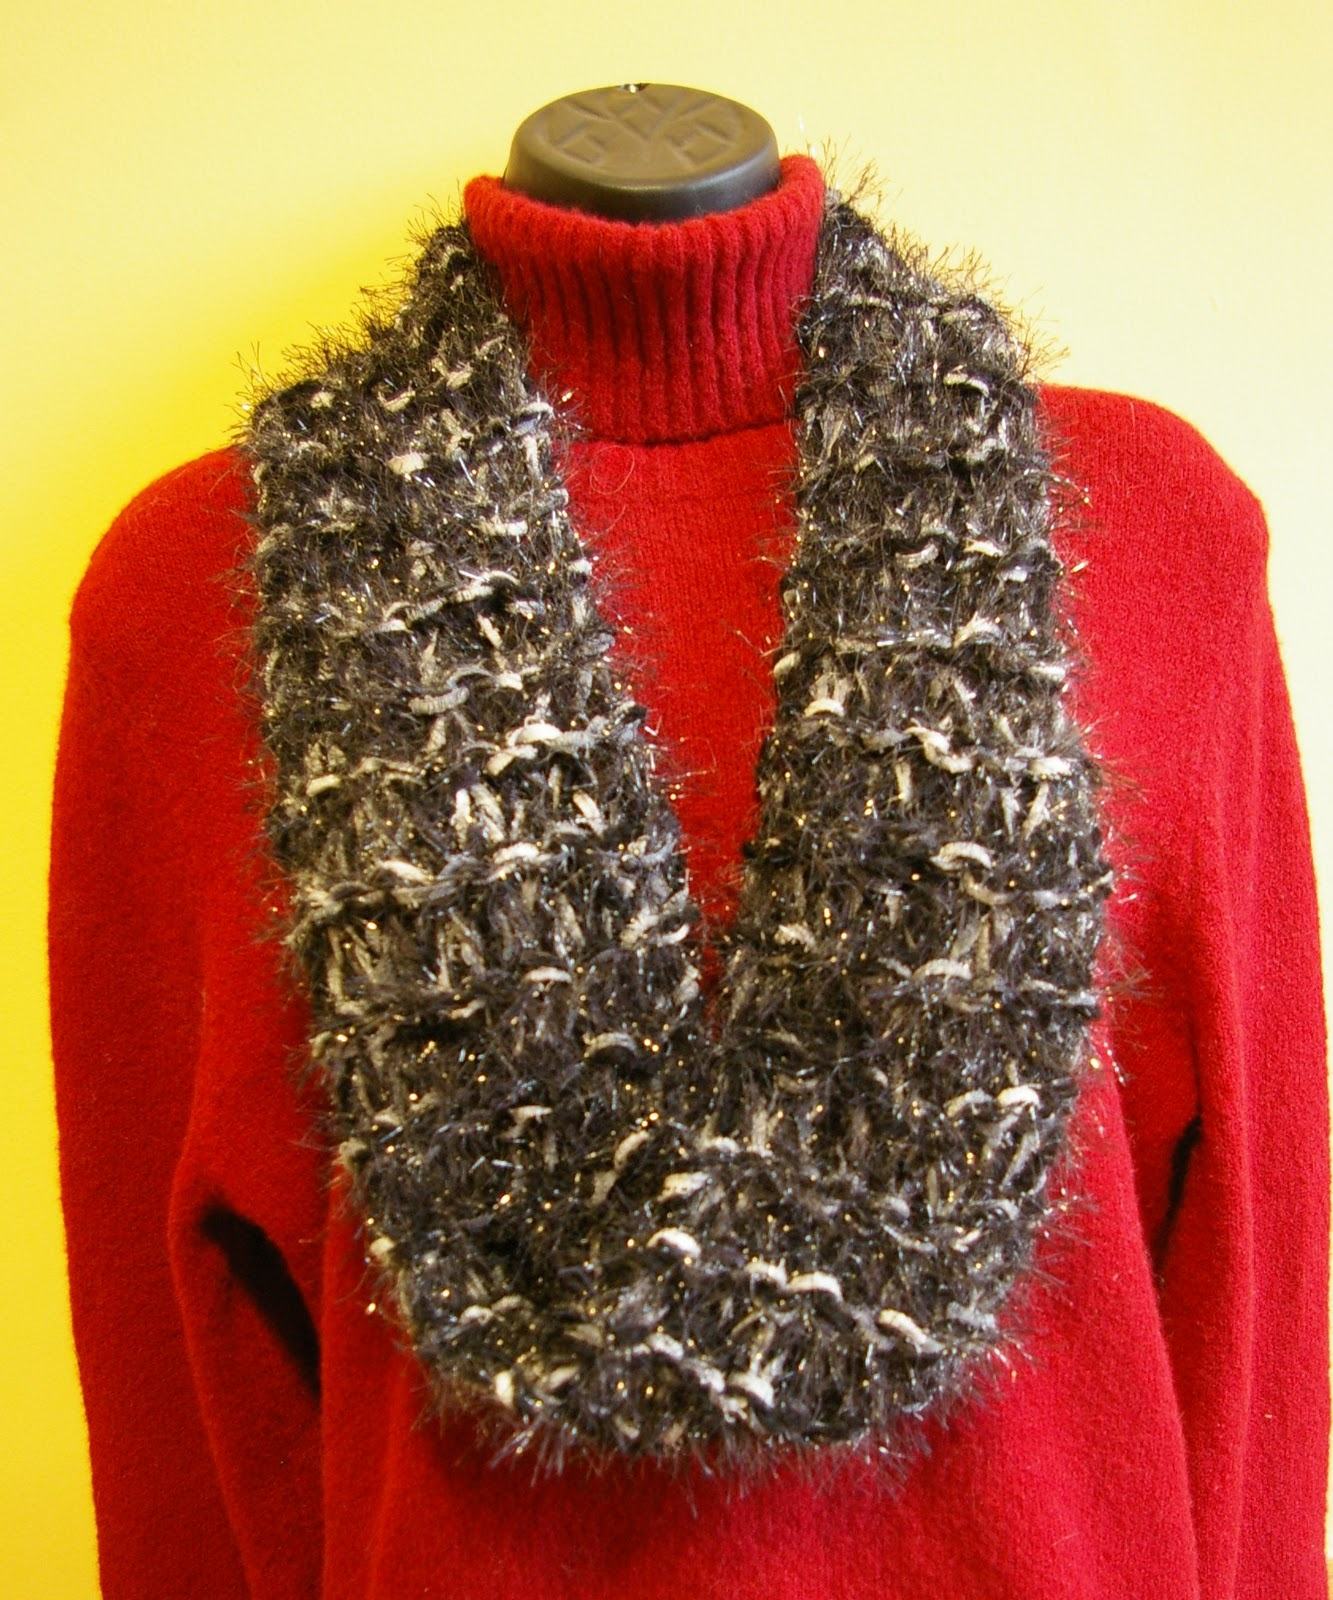 Knitting Instructions For Mobius Scarf : Knit In Your Sleep: Easy Mobius Cowl Scarf